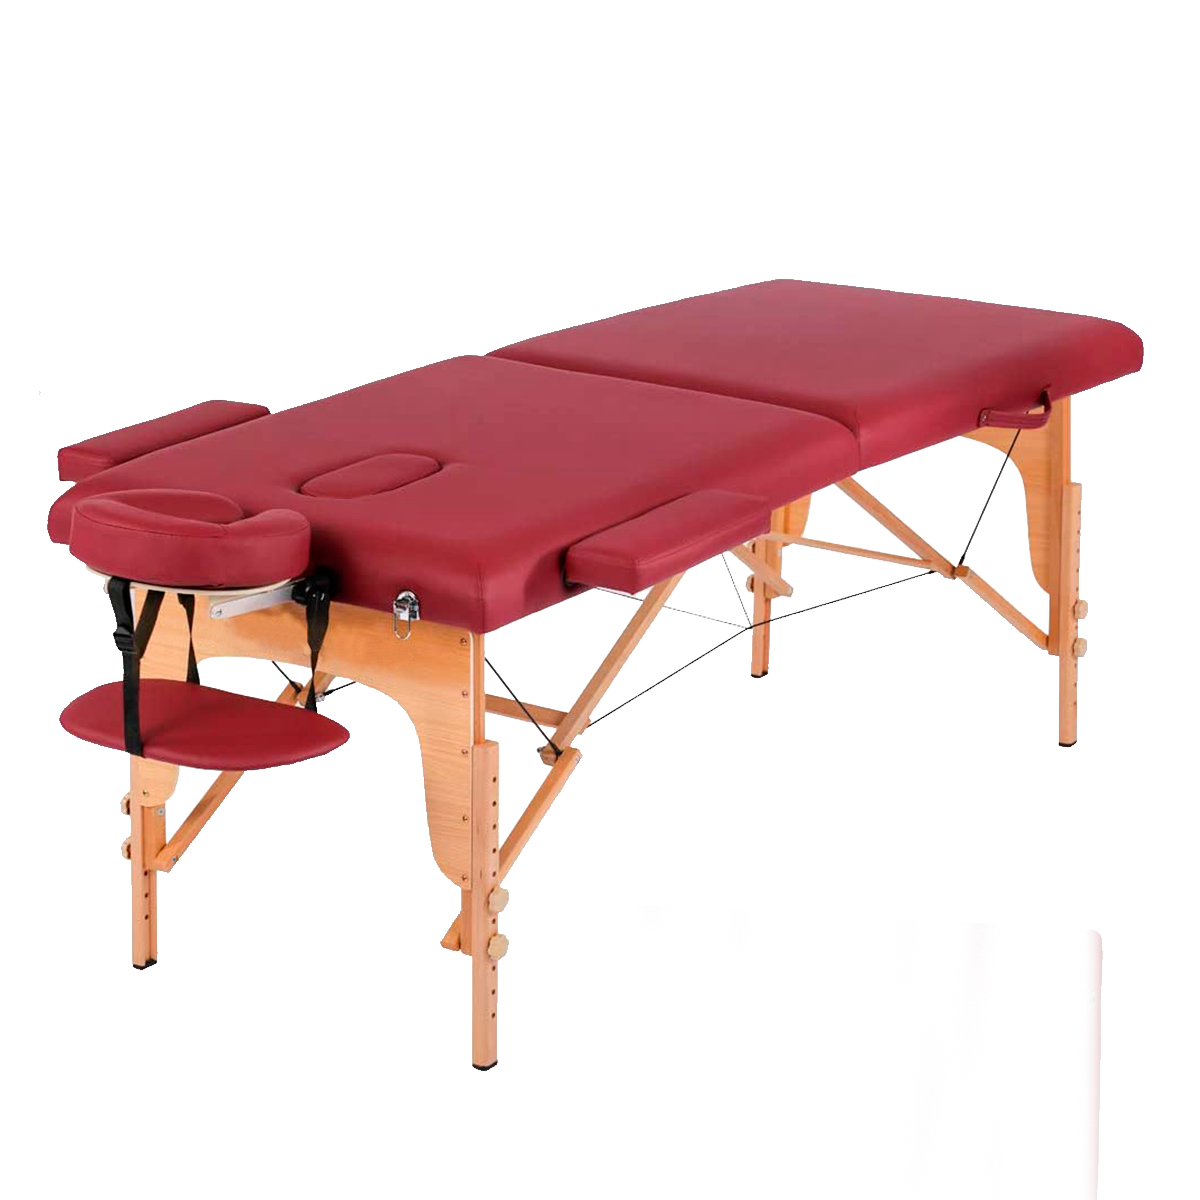 Spa tables